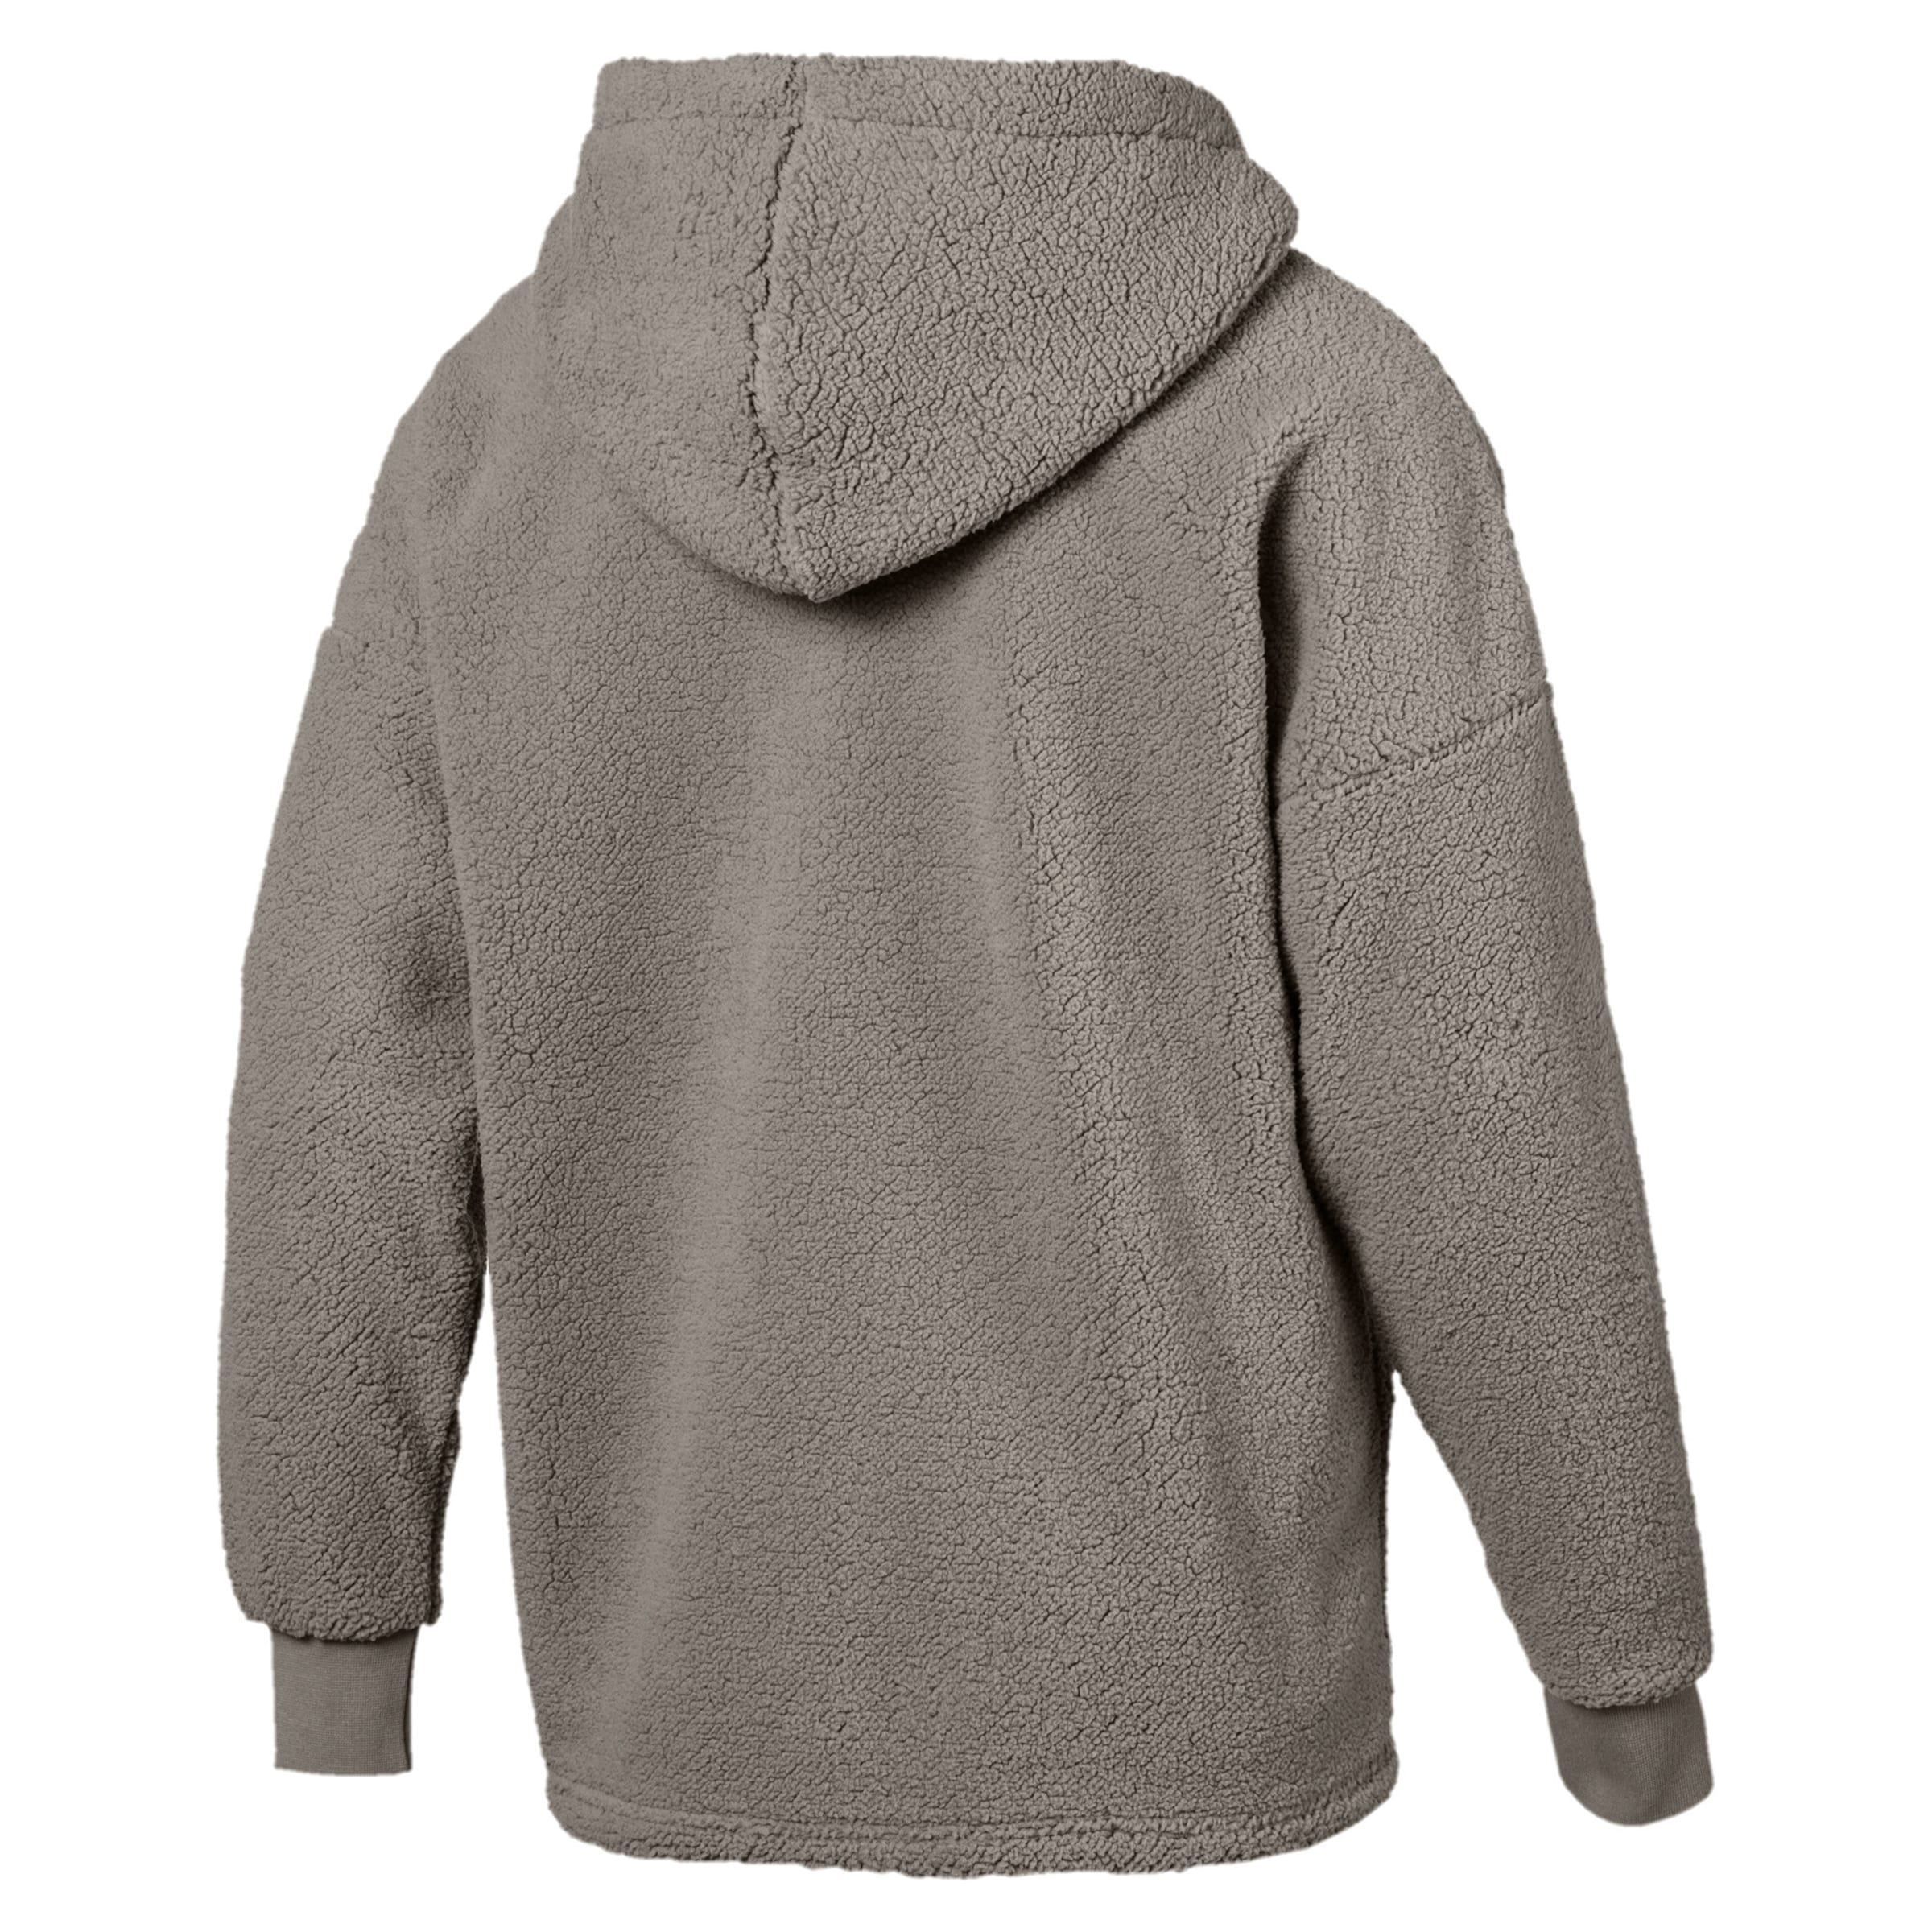 Hoodie 'downtown' Taupe Puma In Puma mnNv0wO8